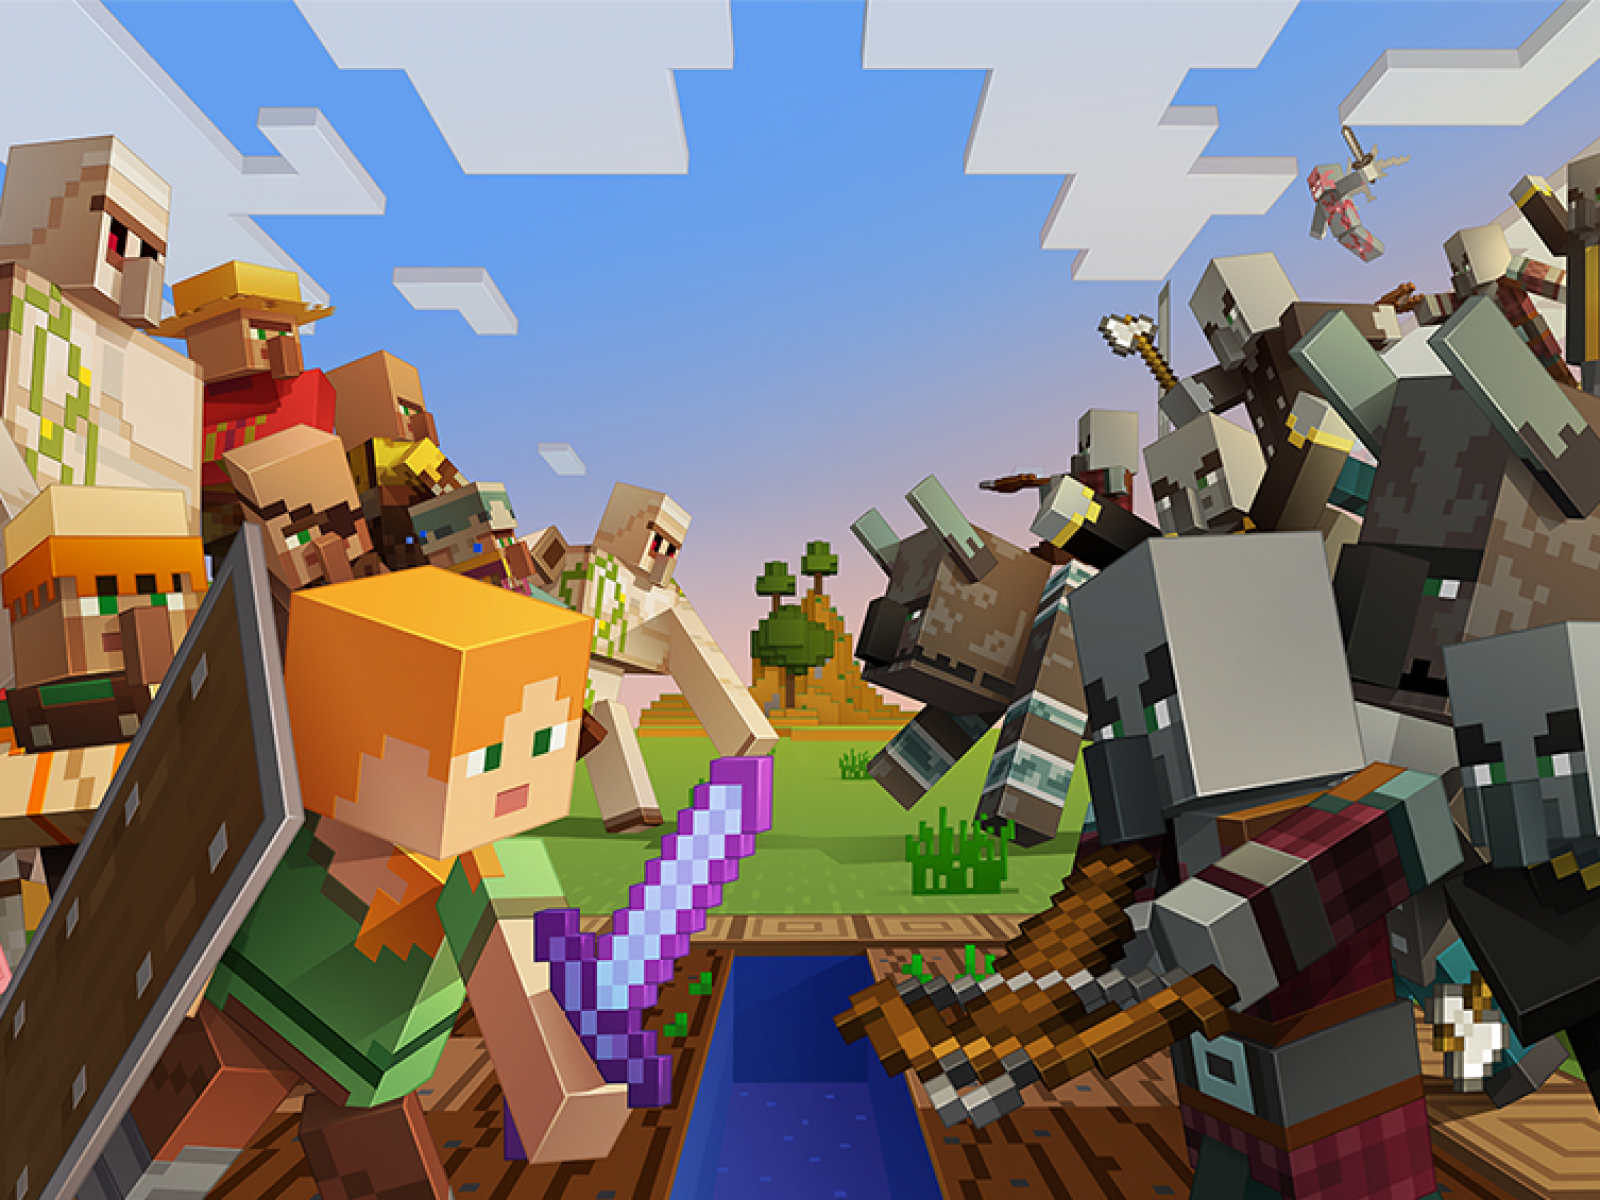 Minecraft 1 14 1 Pre-Release 1: Snapshot Brings Tons of